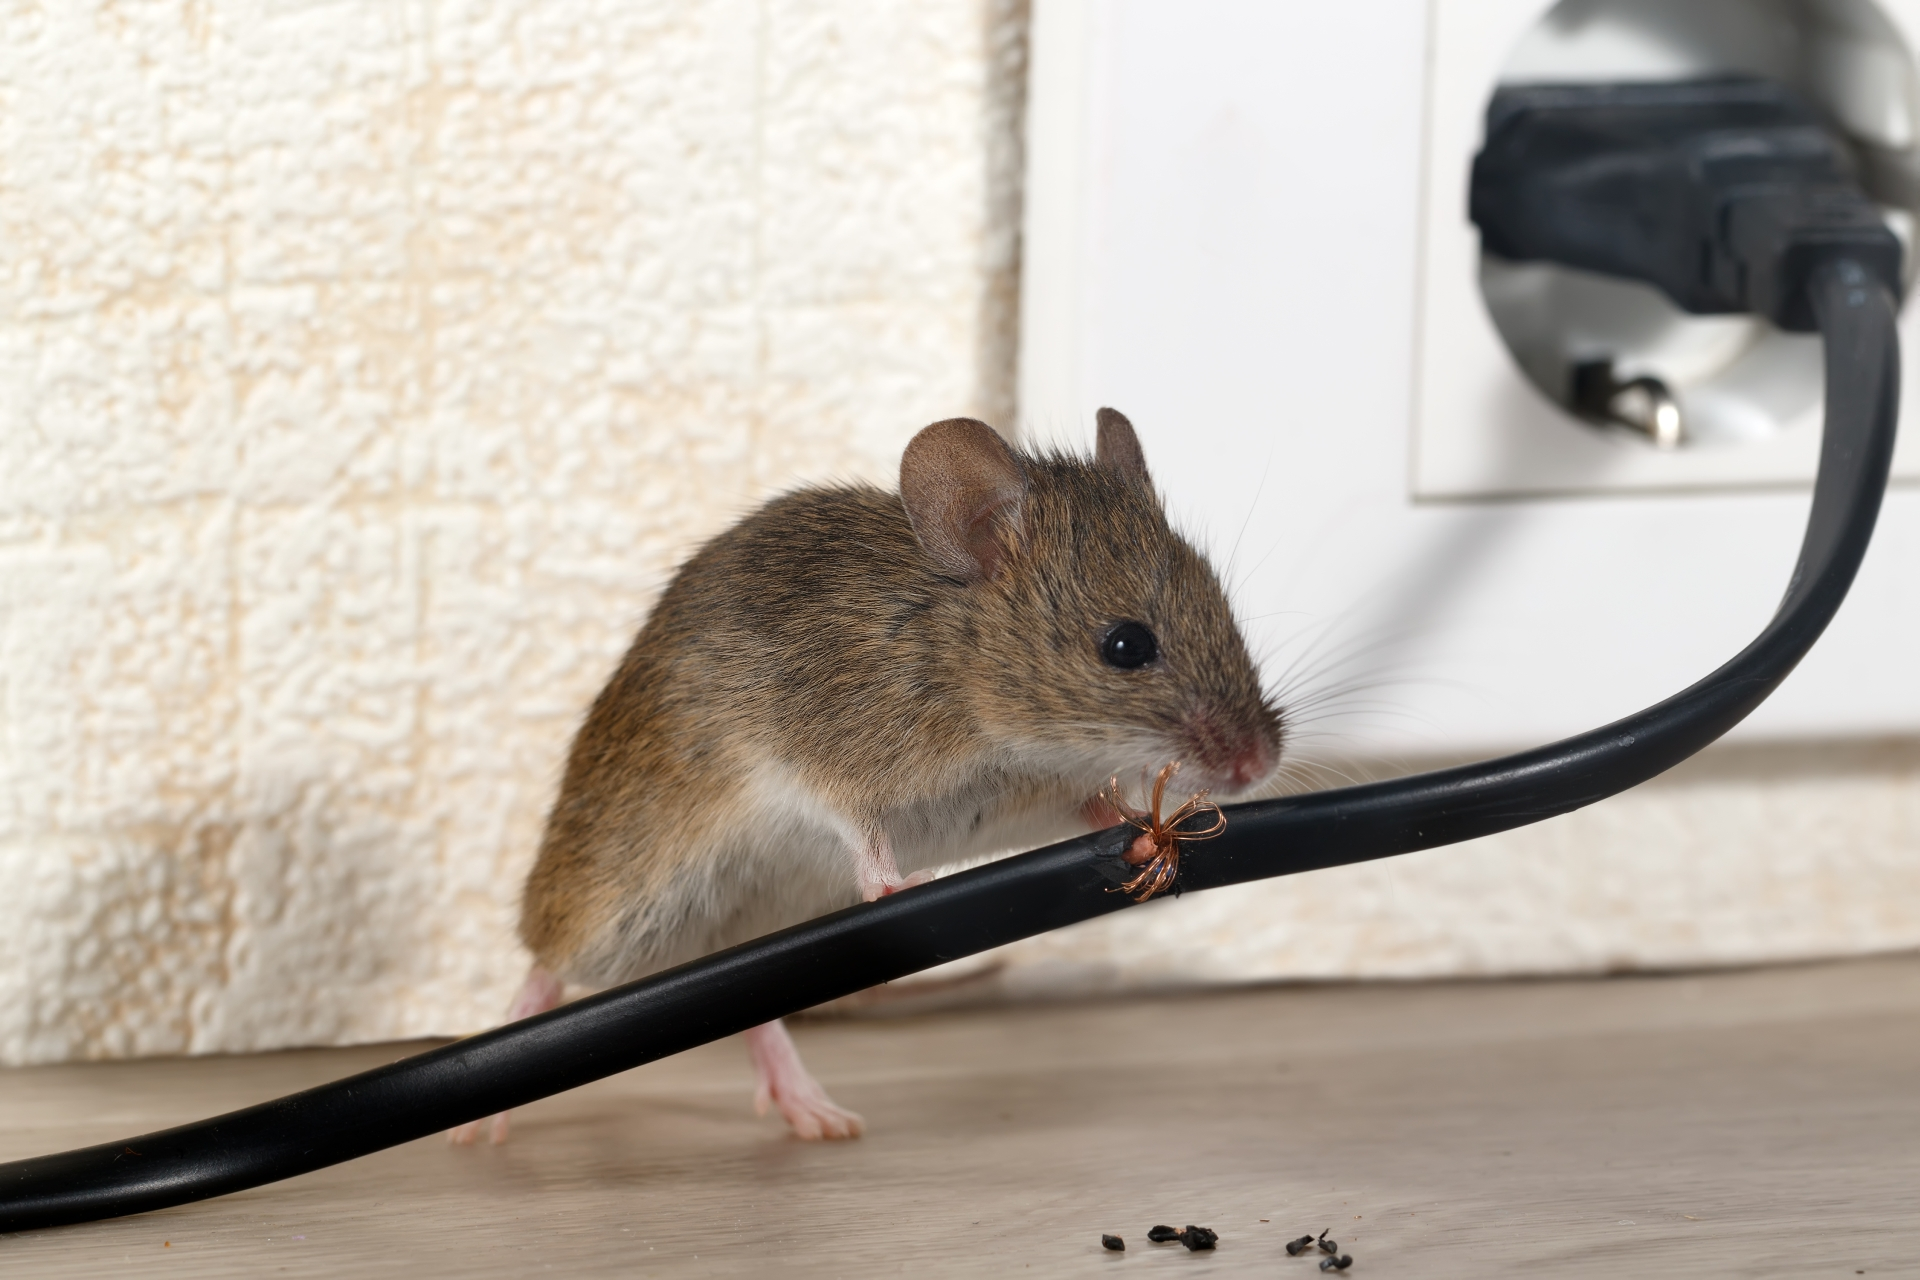 Mice Infestation, Pest Control in Eltham, Mottingham, SE9. Call Now 020 8166 9746